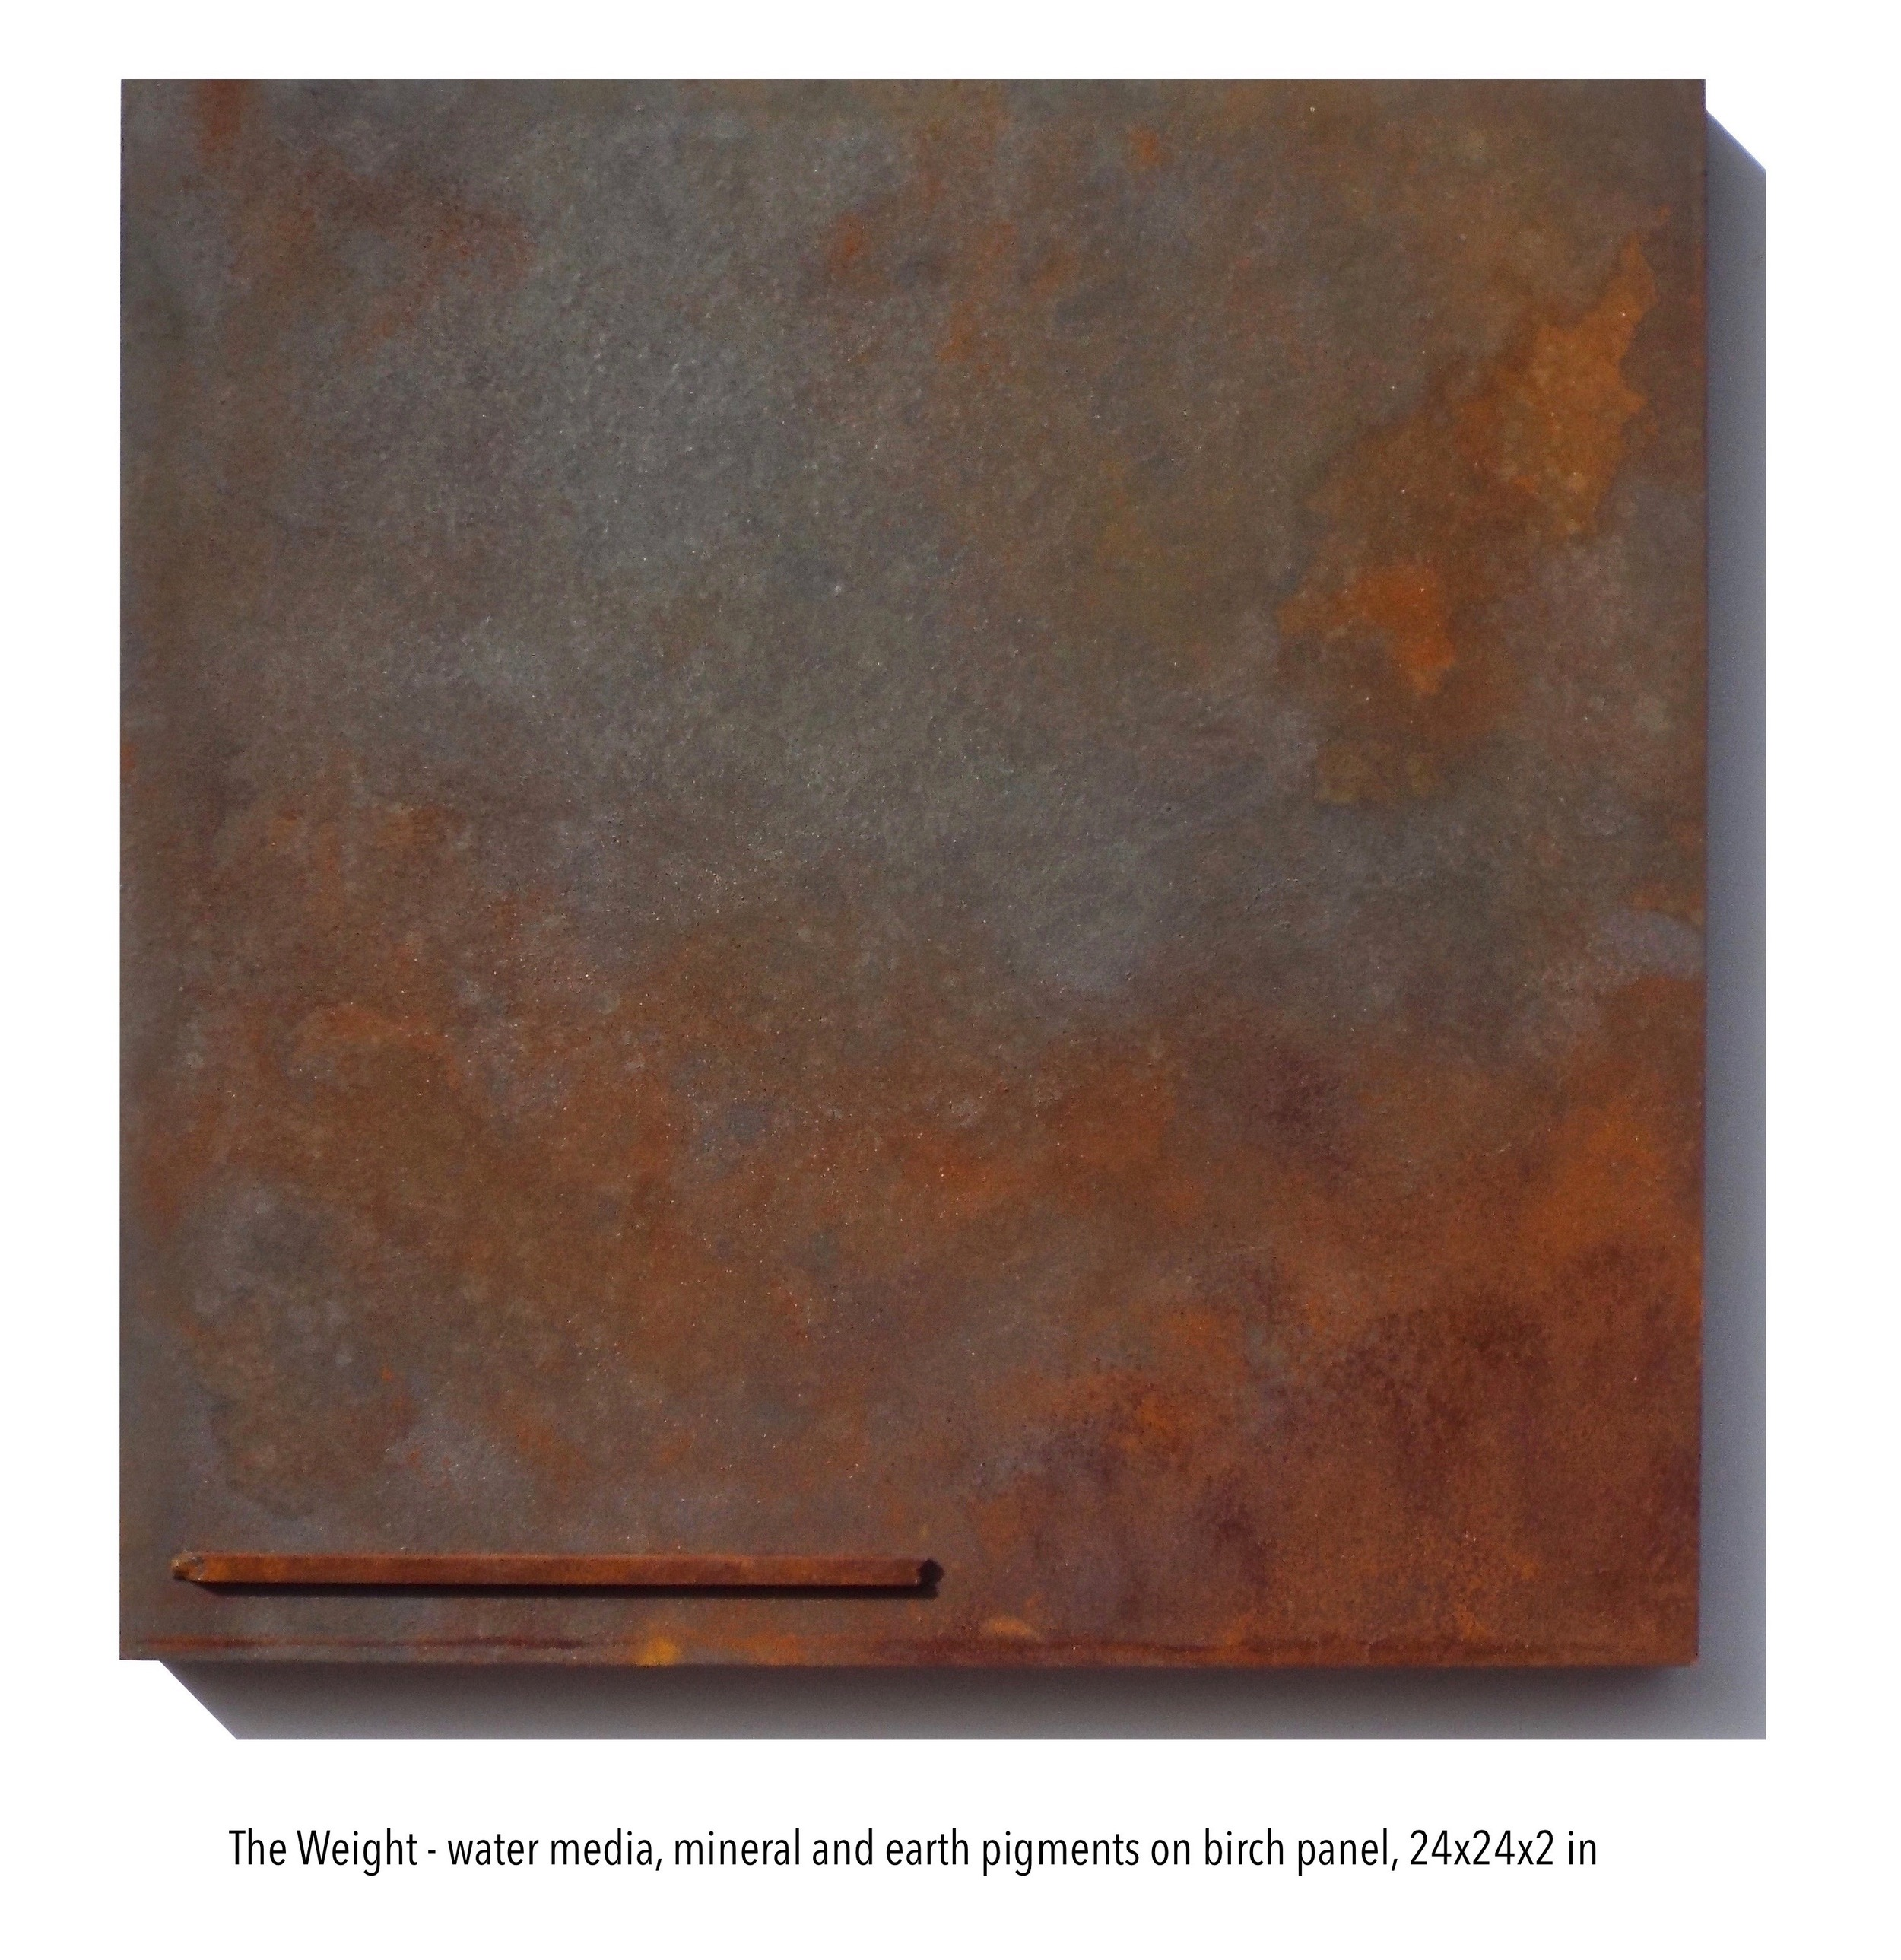 The Weight, water media & mineral pigments on panel, 24x24x2 in. (1).jpg